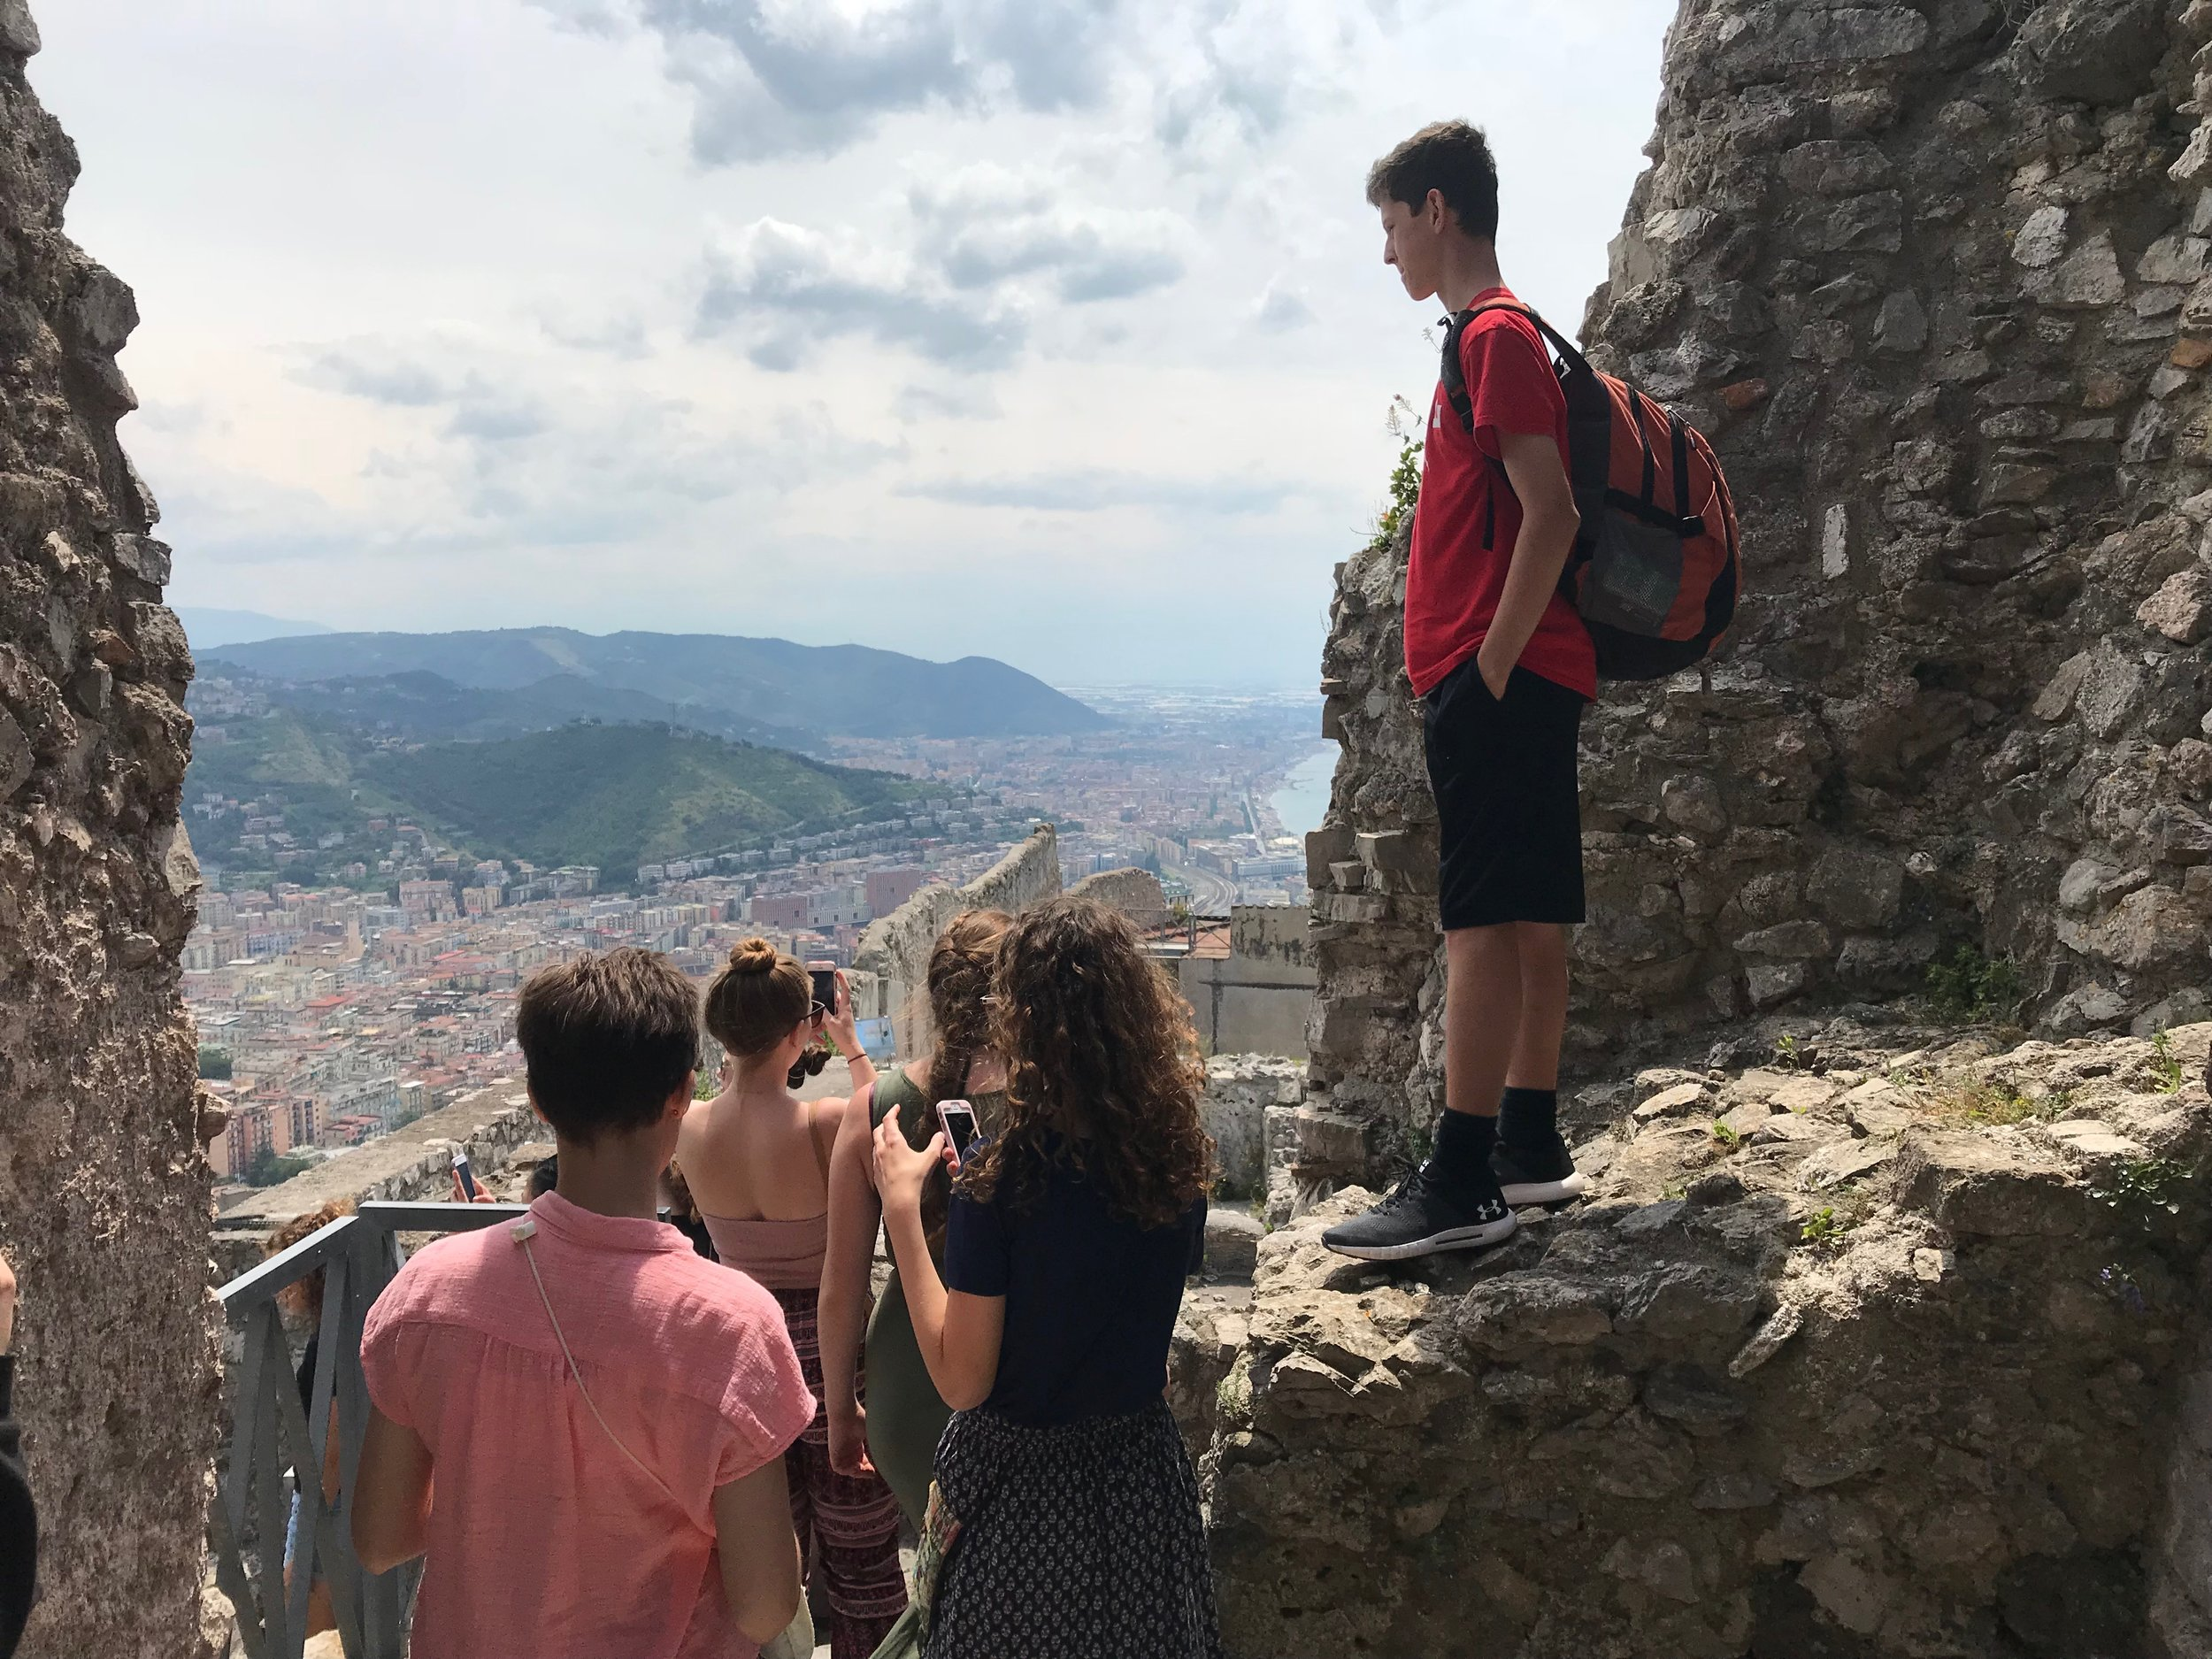 Students tour the Arechi Castle overlooking the Gulf of Salerno, Italy.